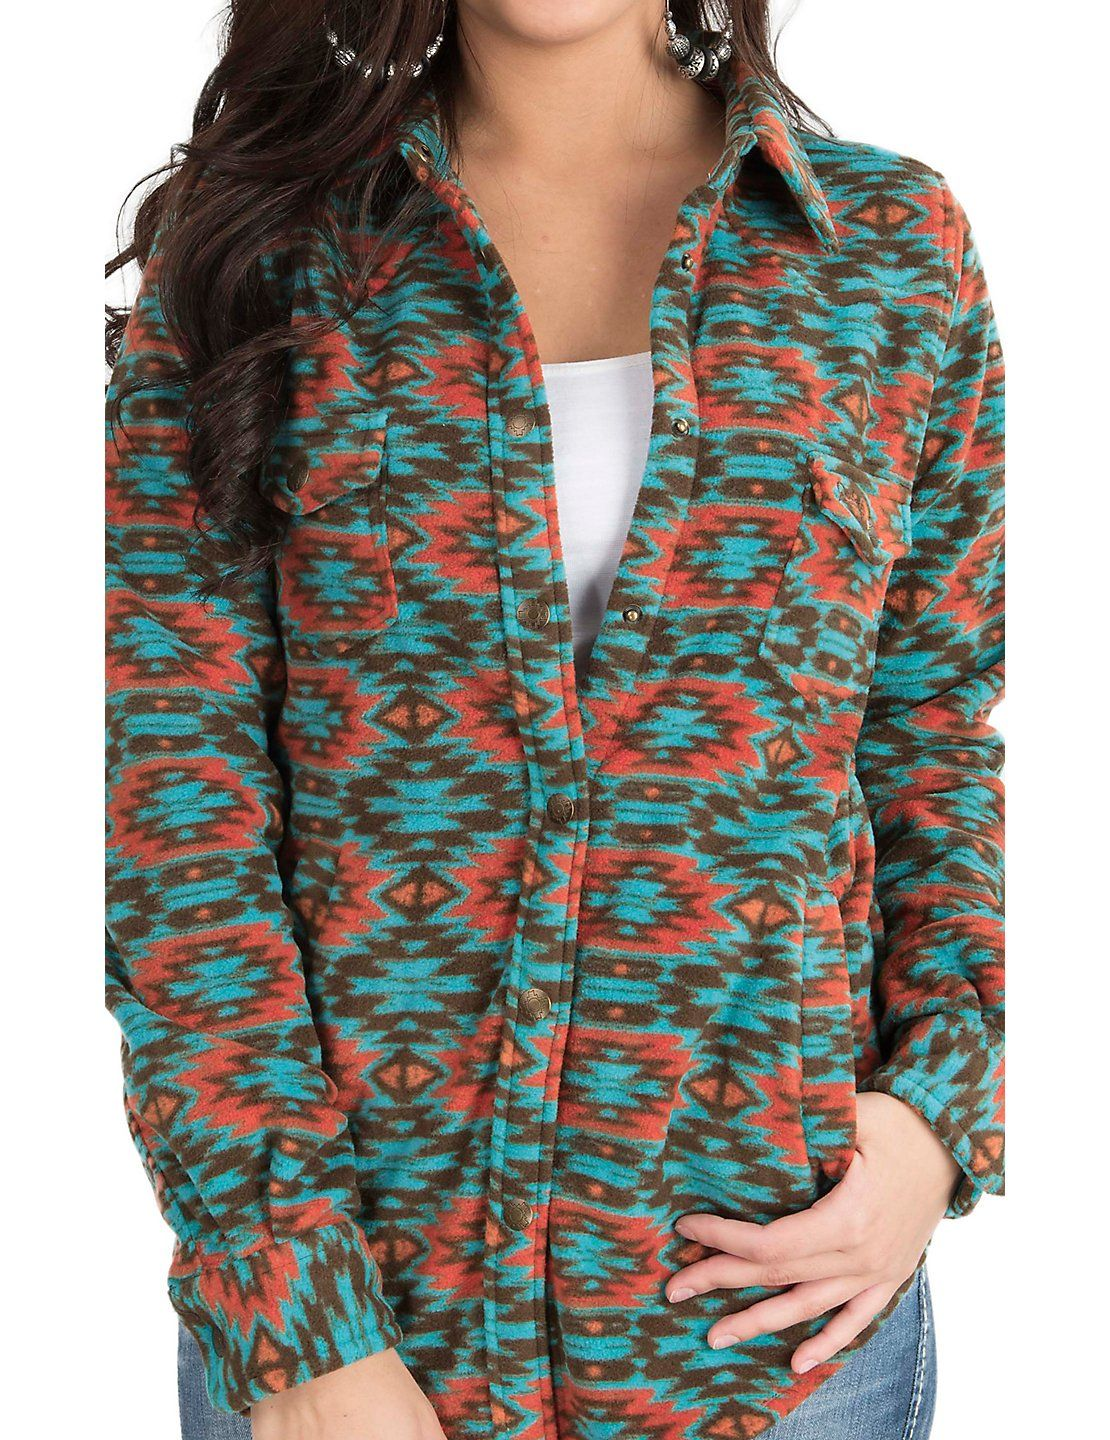 Outback Trading Company Women S Turquoise And Coral Native Print Long Sleeve Fleece Jacket Cavender S Outerwear Women Rodeo Shirts Western Shirts [ 1440 x 1110 Pixel ]